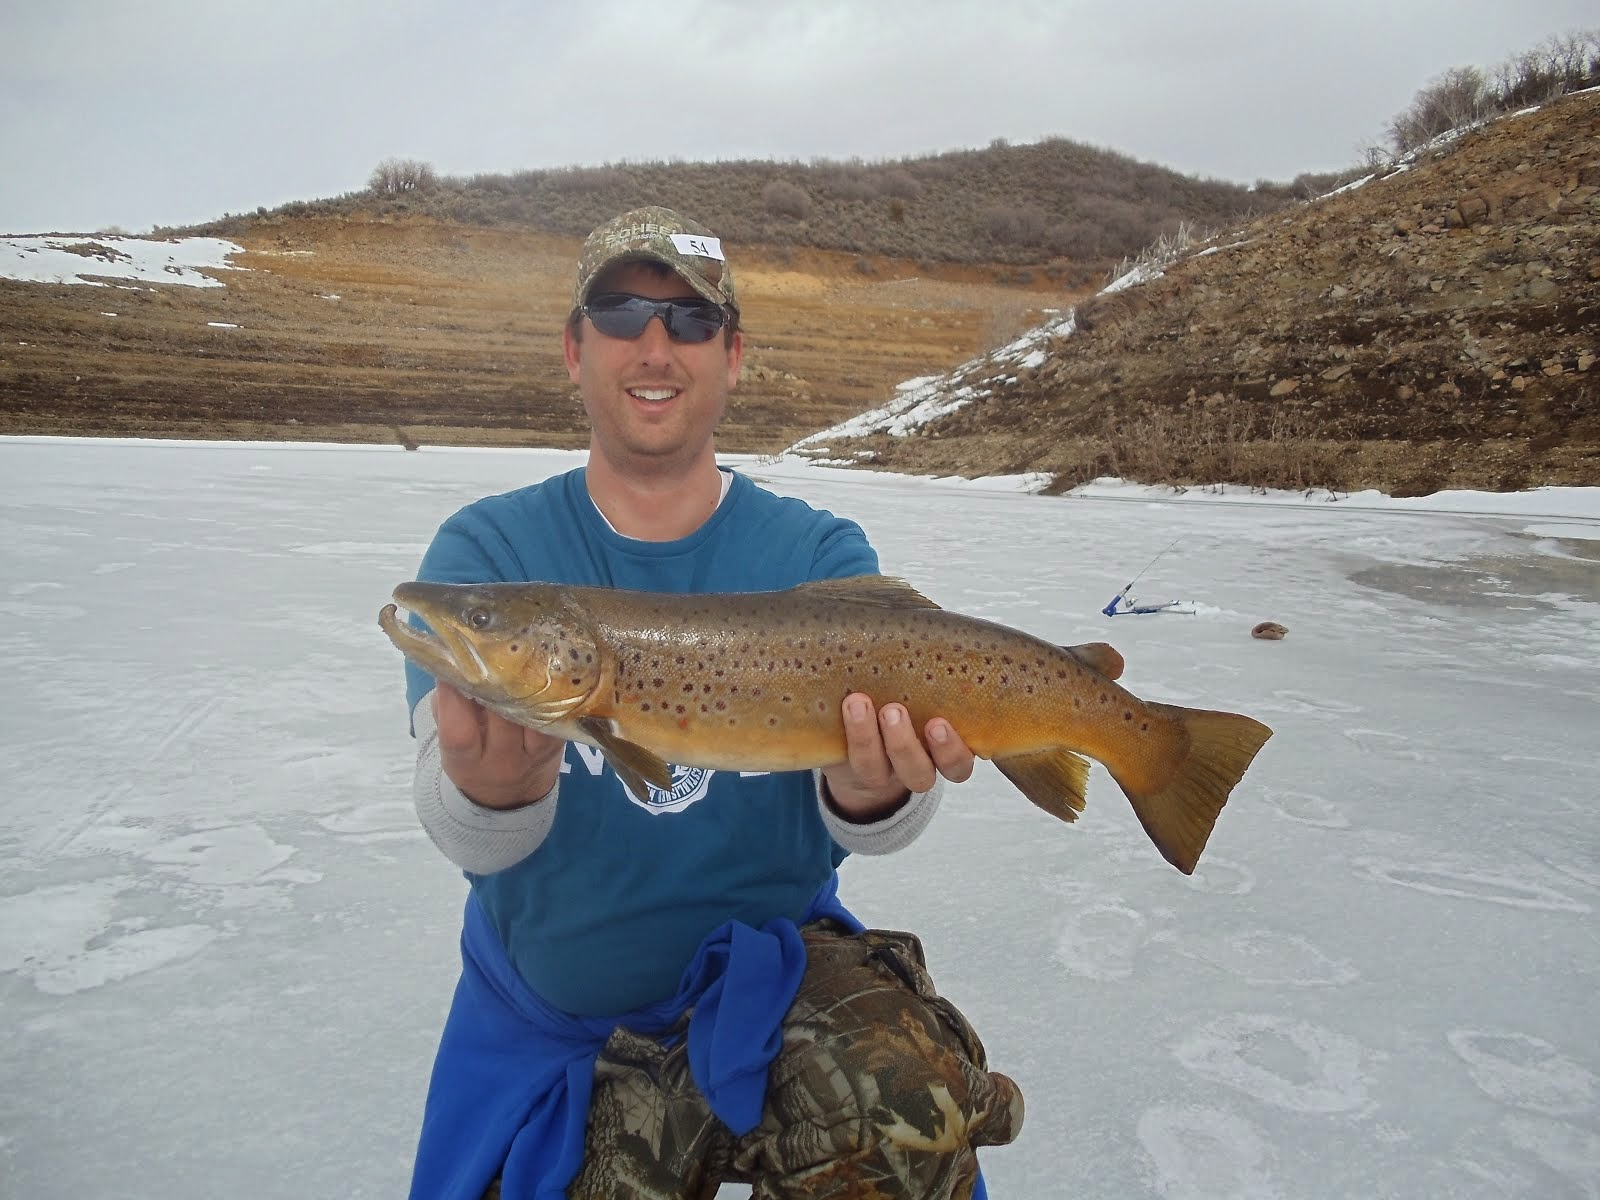 Utah fisherman victory at flaming gorge for Big fish tackle utah